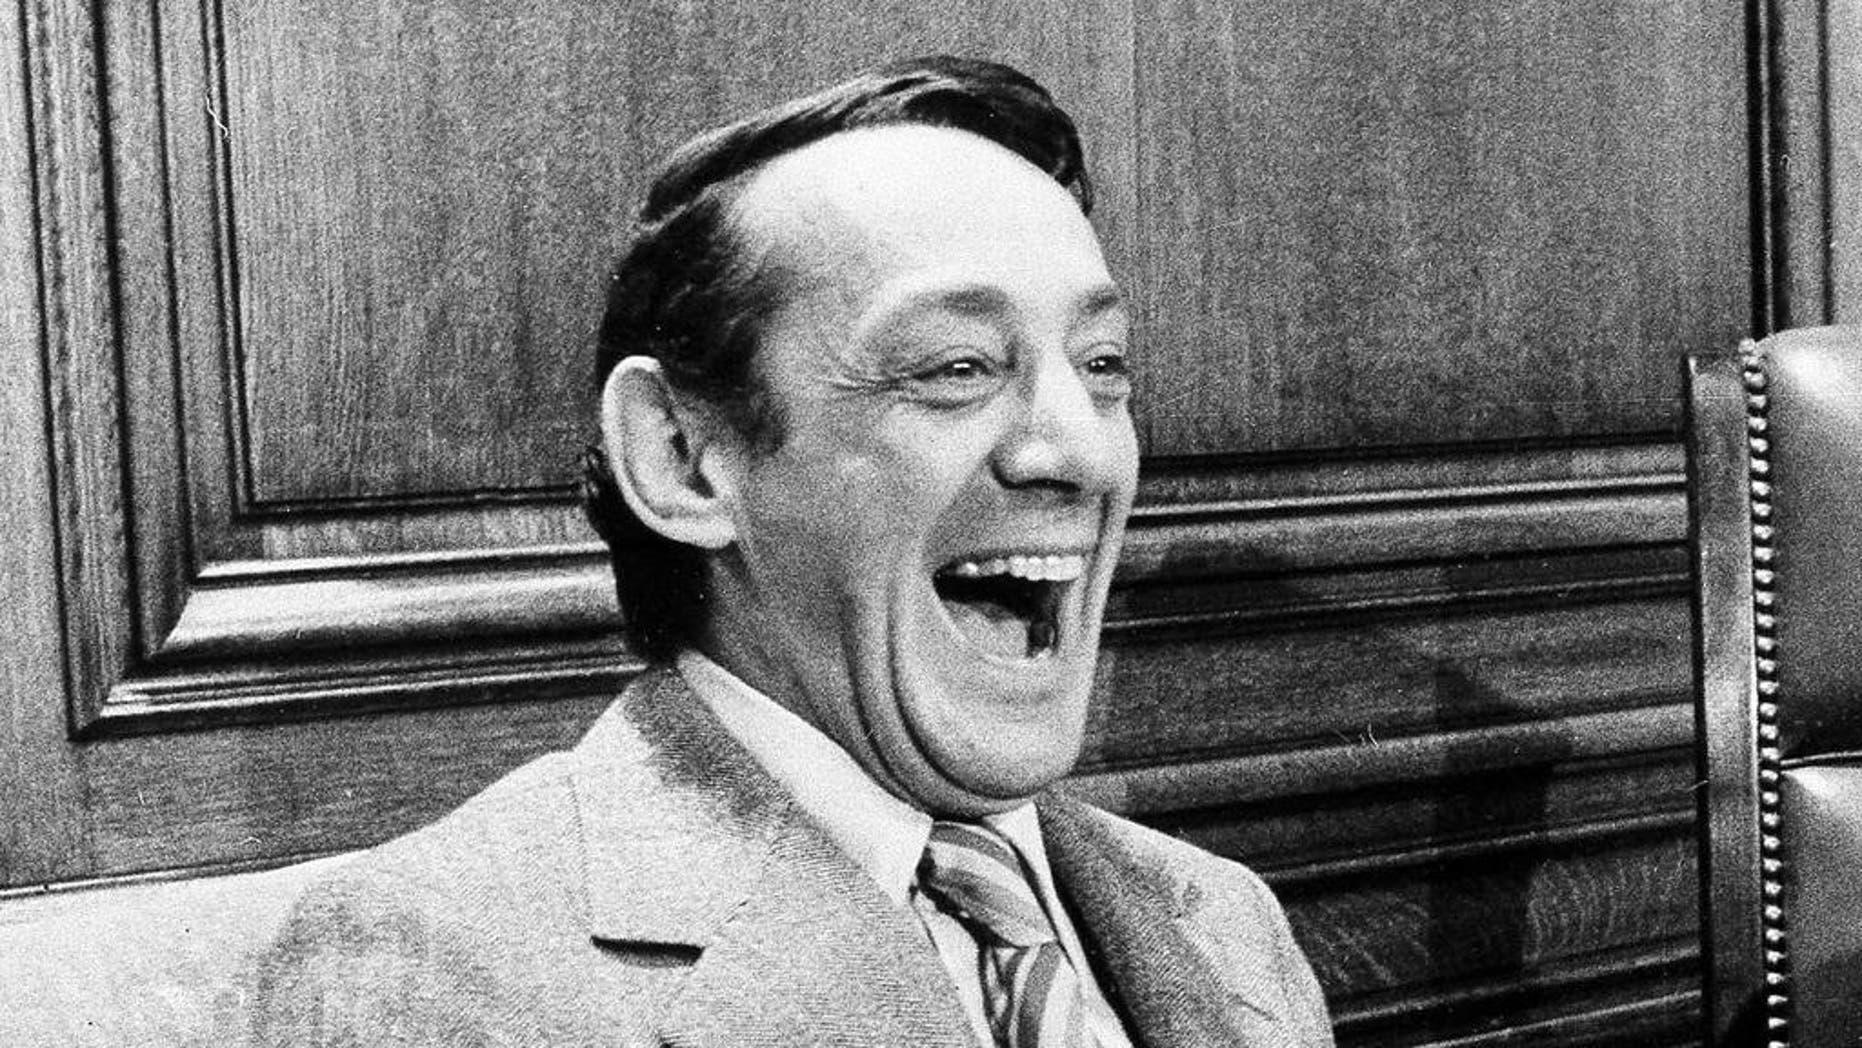 FILE - In this April 1977 file photo, San Francisco supervisor Harvey Milk sits in the mayor's office during the signing of the city's gay rights bill in San Francisco. The late gay rights leader Milk already has schools, streets and parks named in his honor. Soon, a U.S. Navy ship will join the list. A Navy official said Friday, July 29, 2016, that Navy Secretary Ray Mabus notified Congress earlier this month that a new fleet of replenishment oilers being built in San Diego will be named for Milk and five other civil and human rights icons. (AP Photo/File)